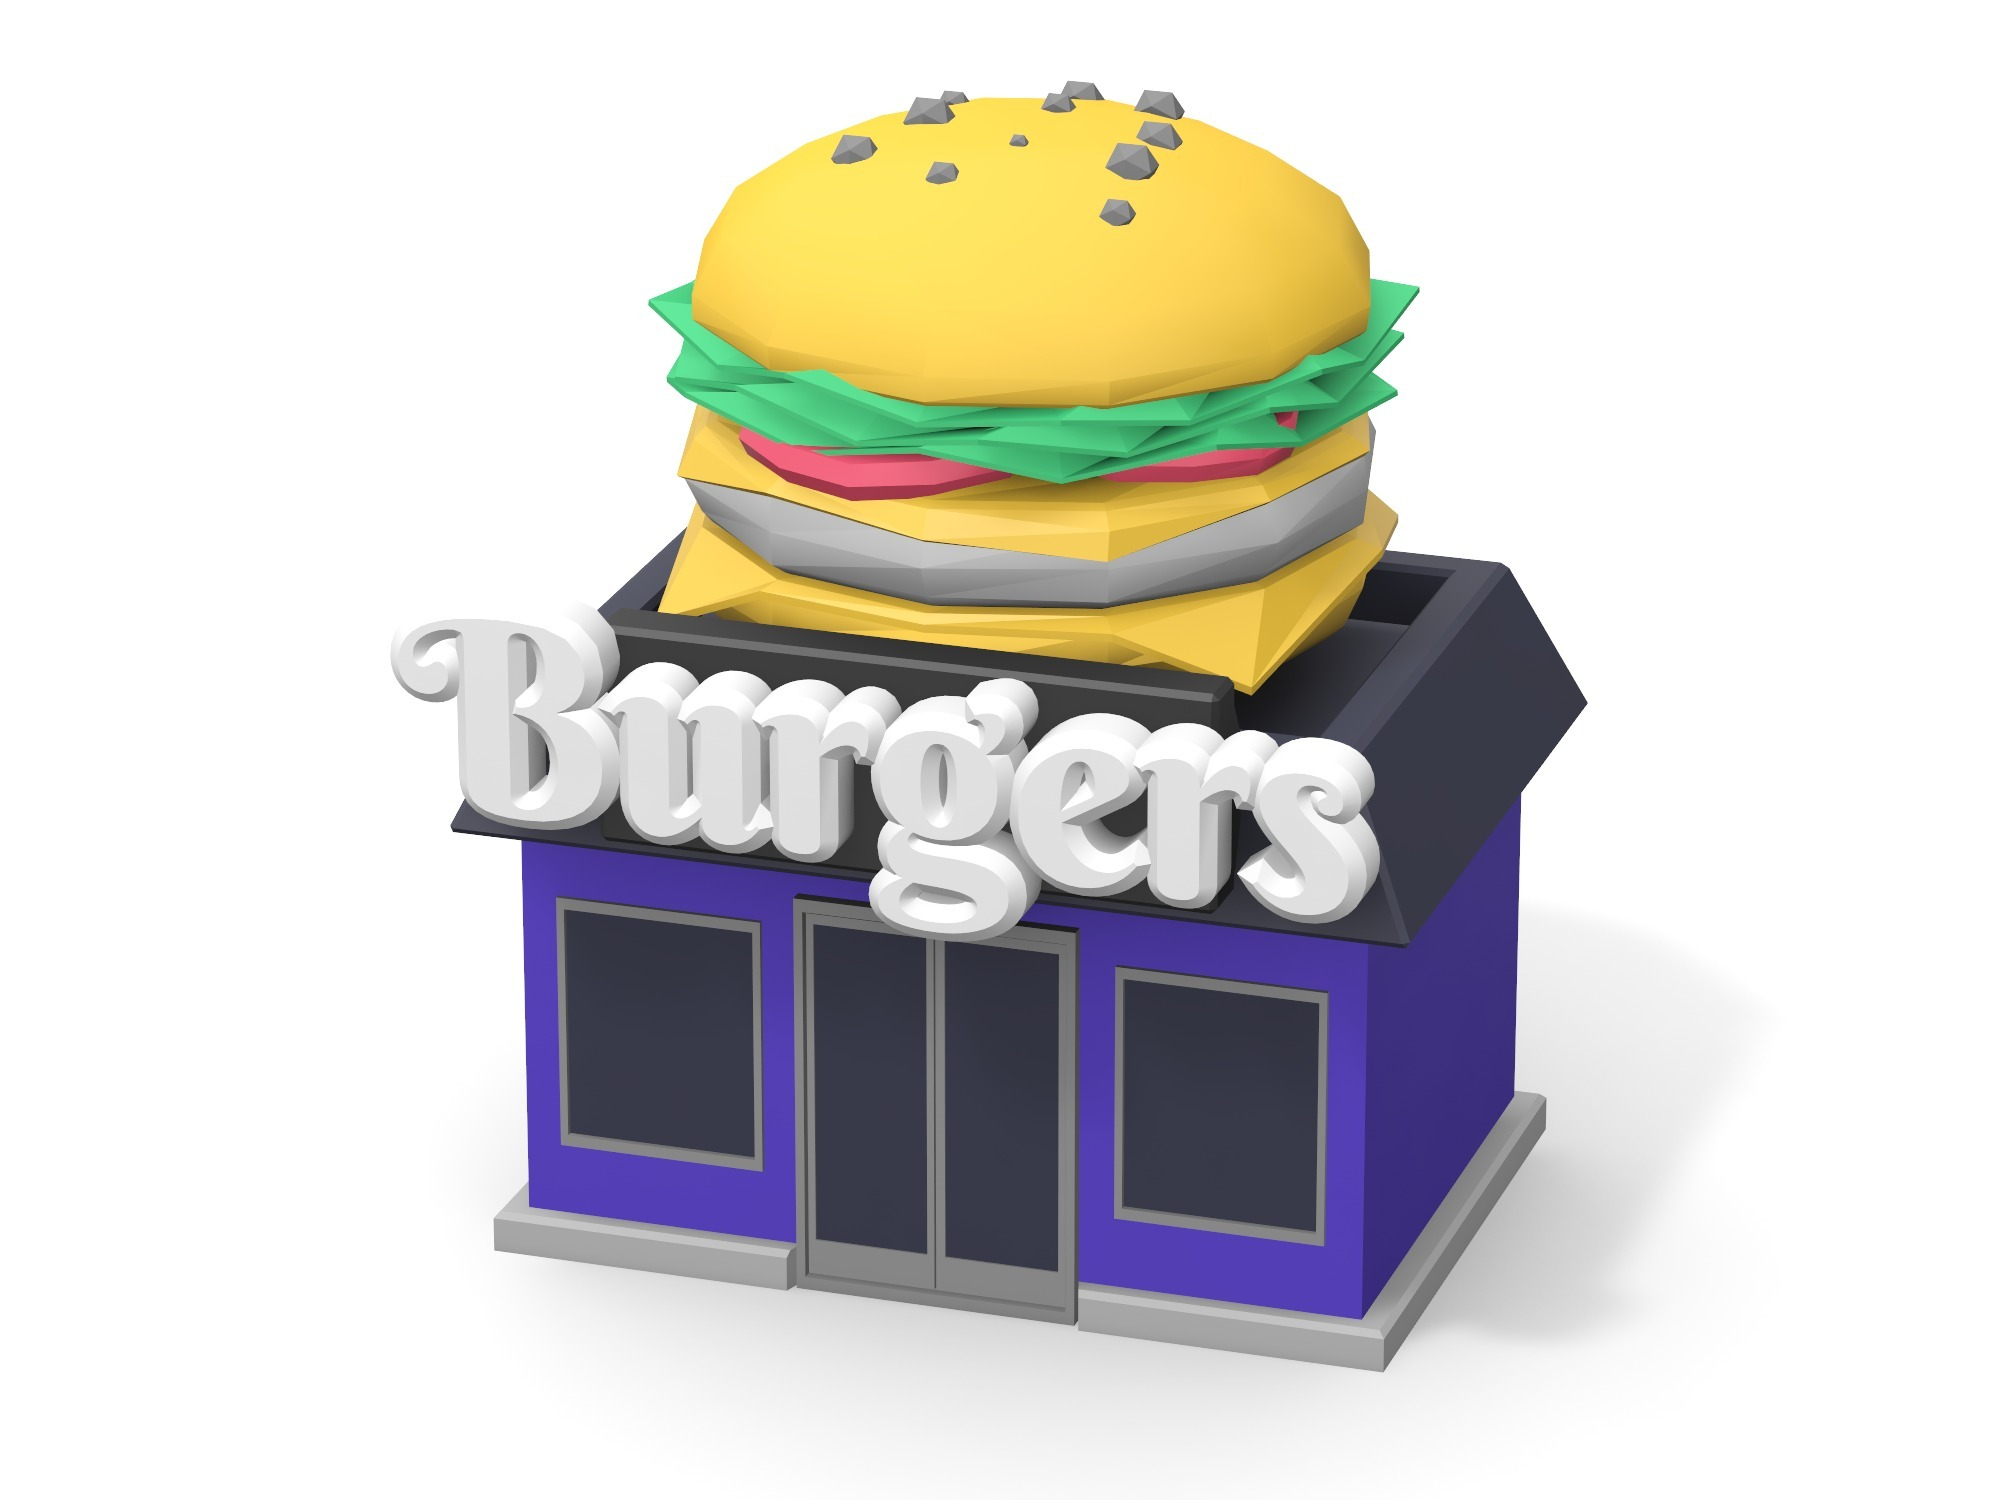 Burger shop - 3D design by Vectary assets Aug 20, 2018